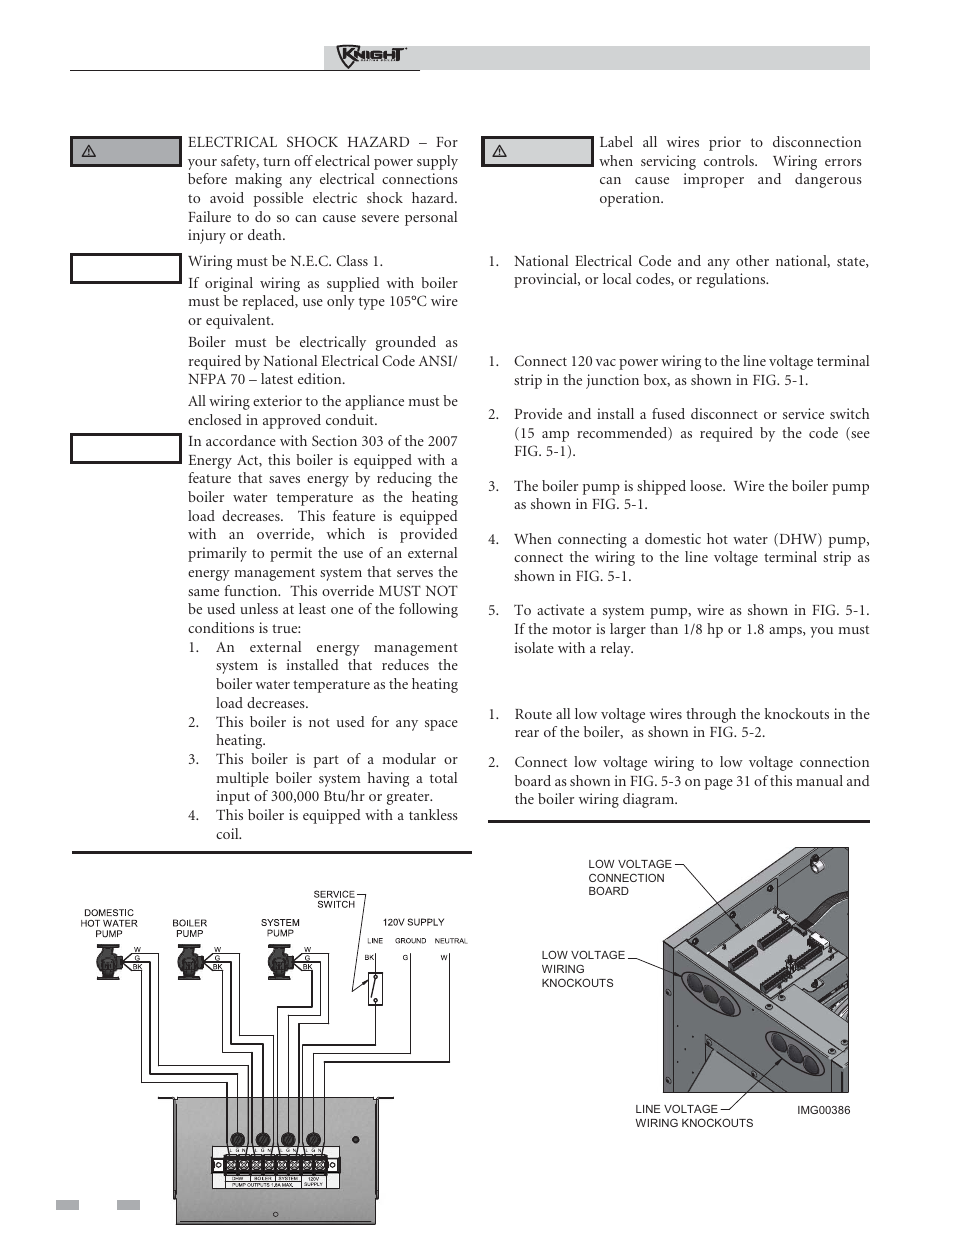 Field Wiring Installation Must Comply With Line Voltage Boilers Diagrams And Manuals Connections Lochinvar Outdoor Knight Boiler 151 286 User Manual Page 28 56